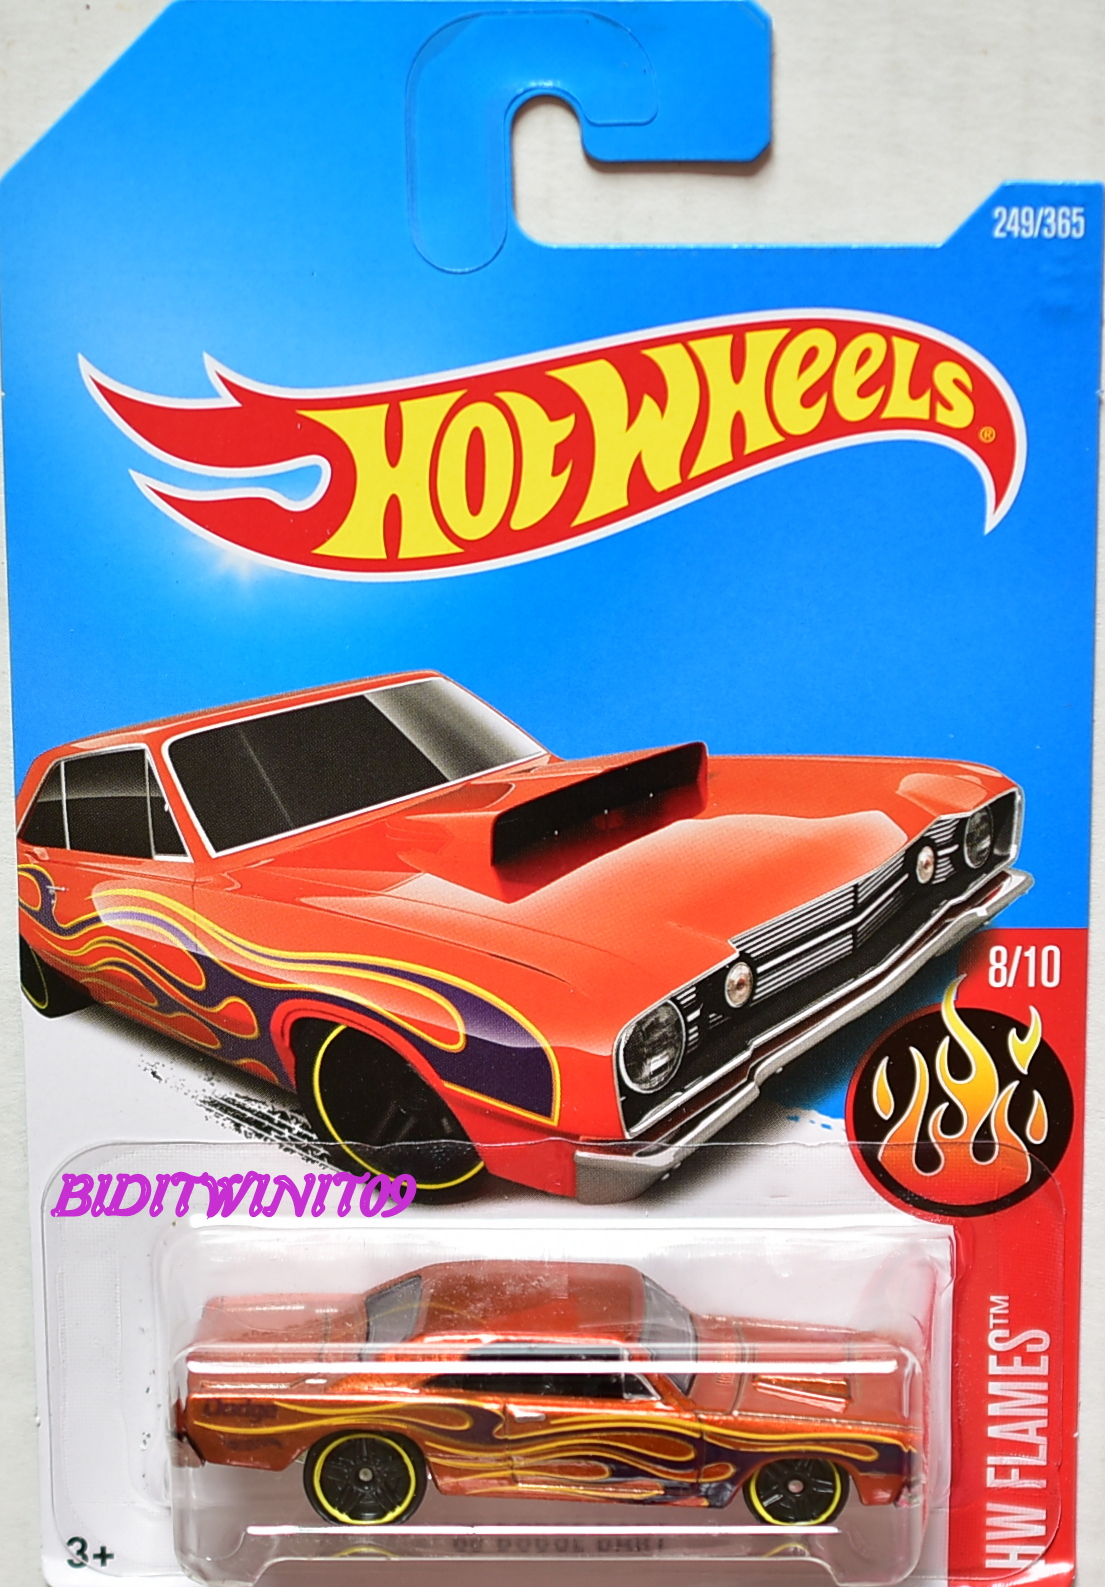 HOT WHEELS 2017 HW FLAMES '68 DODGE DART #8/10